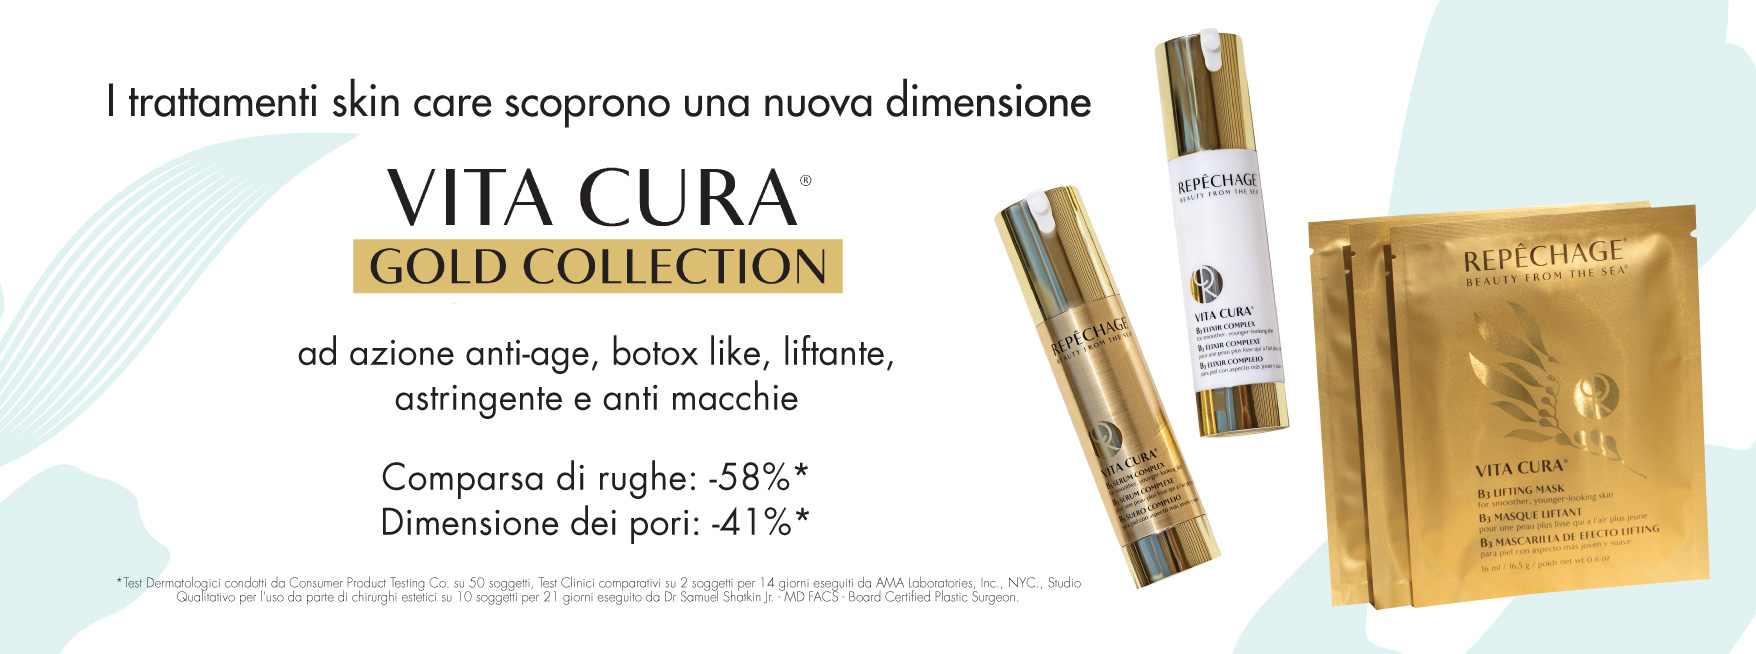 Vitacura Gold Collection